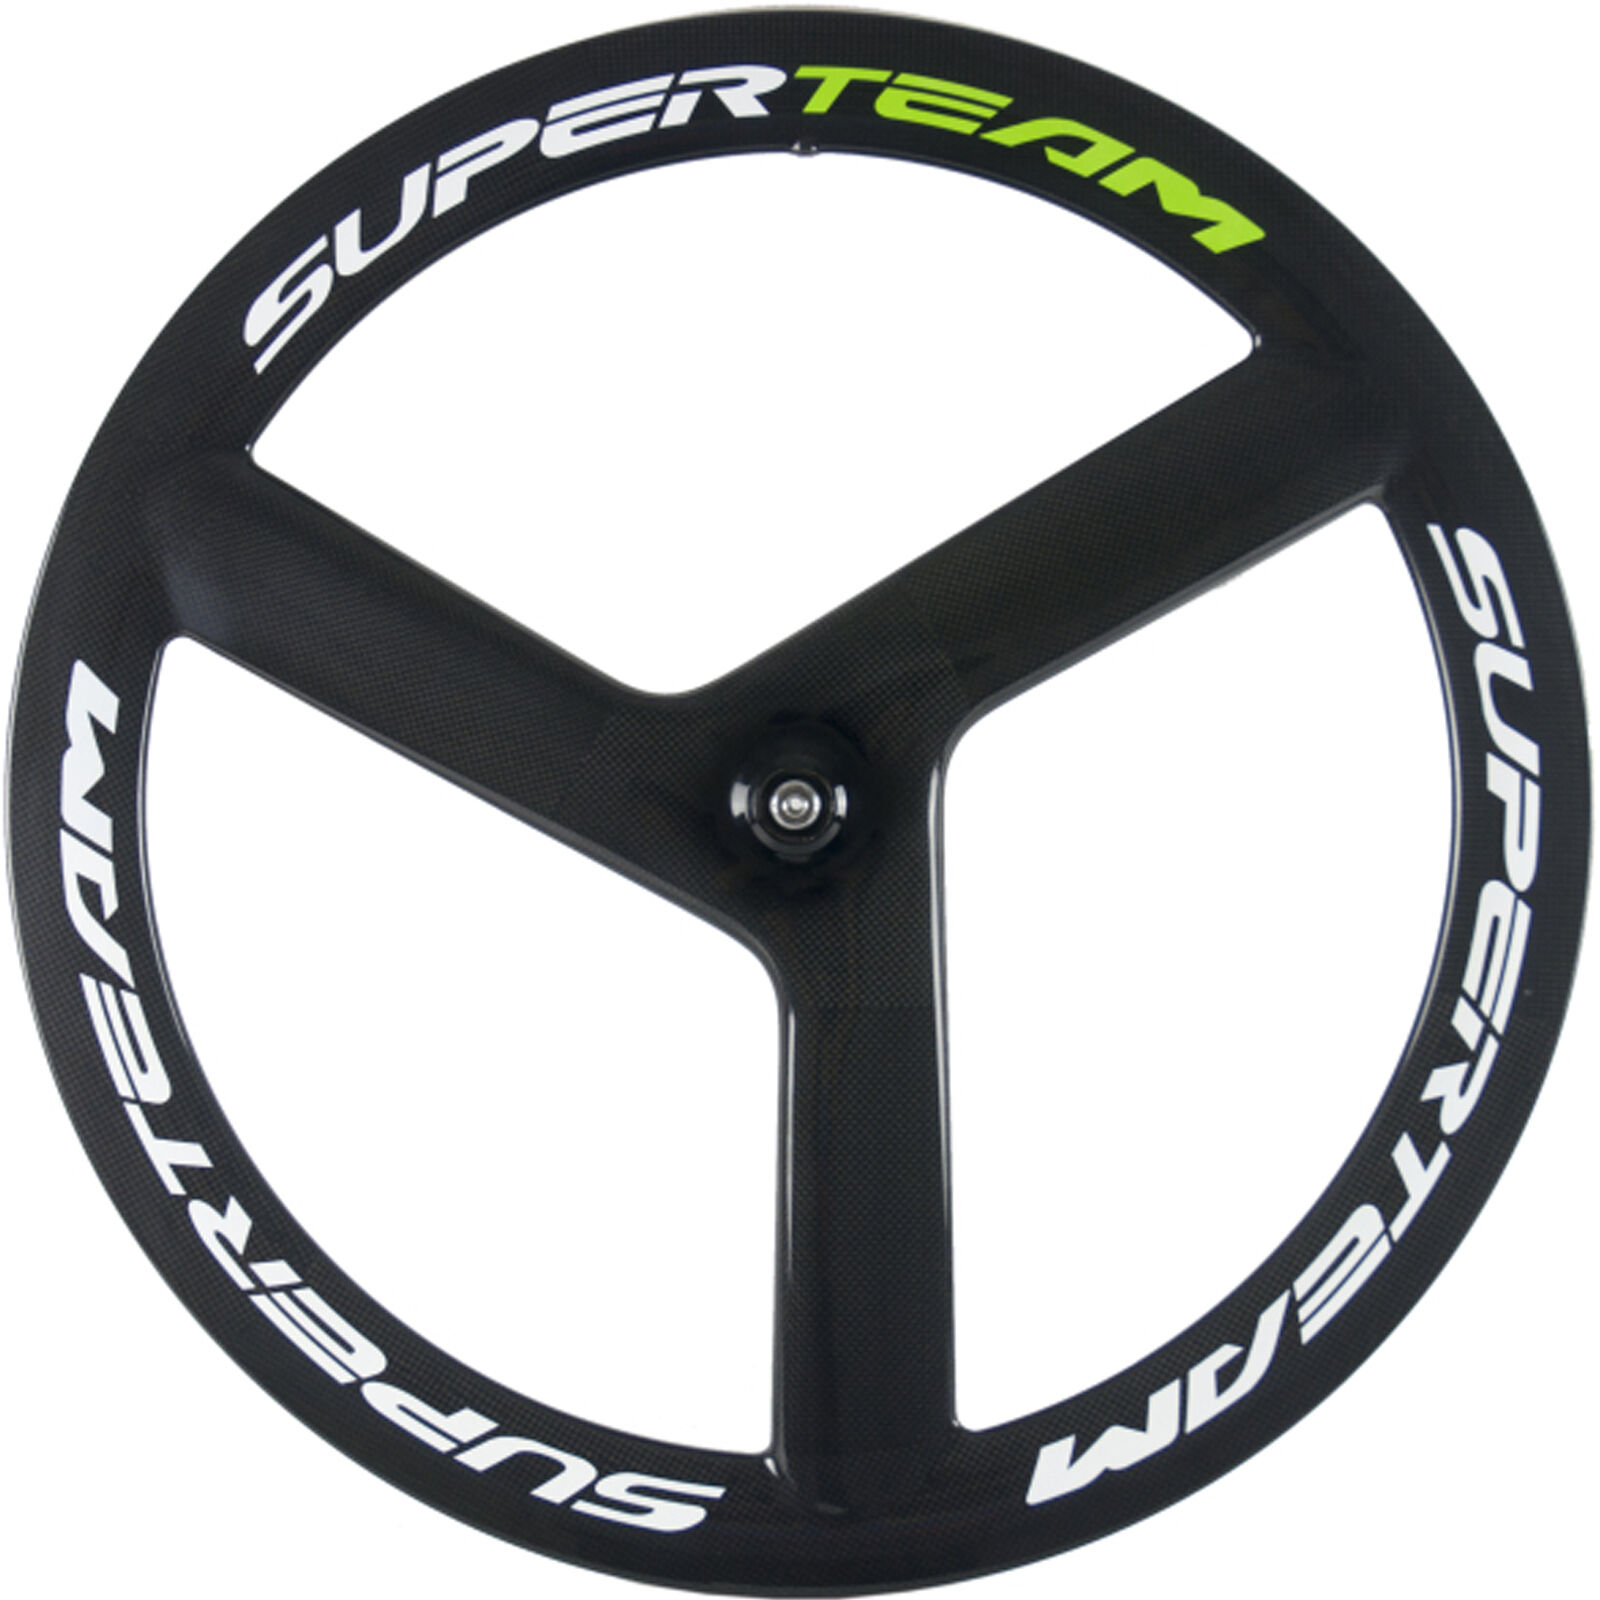 SUPERTEAM 56mm 3 Spoke Carbon Wheels 3k Glossy Fixed  Gear Carbon Front Wheel  excellent prices